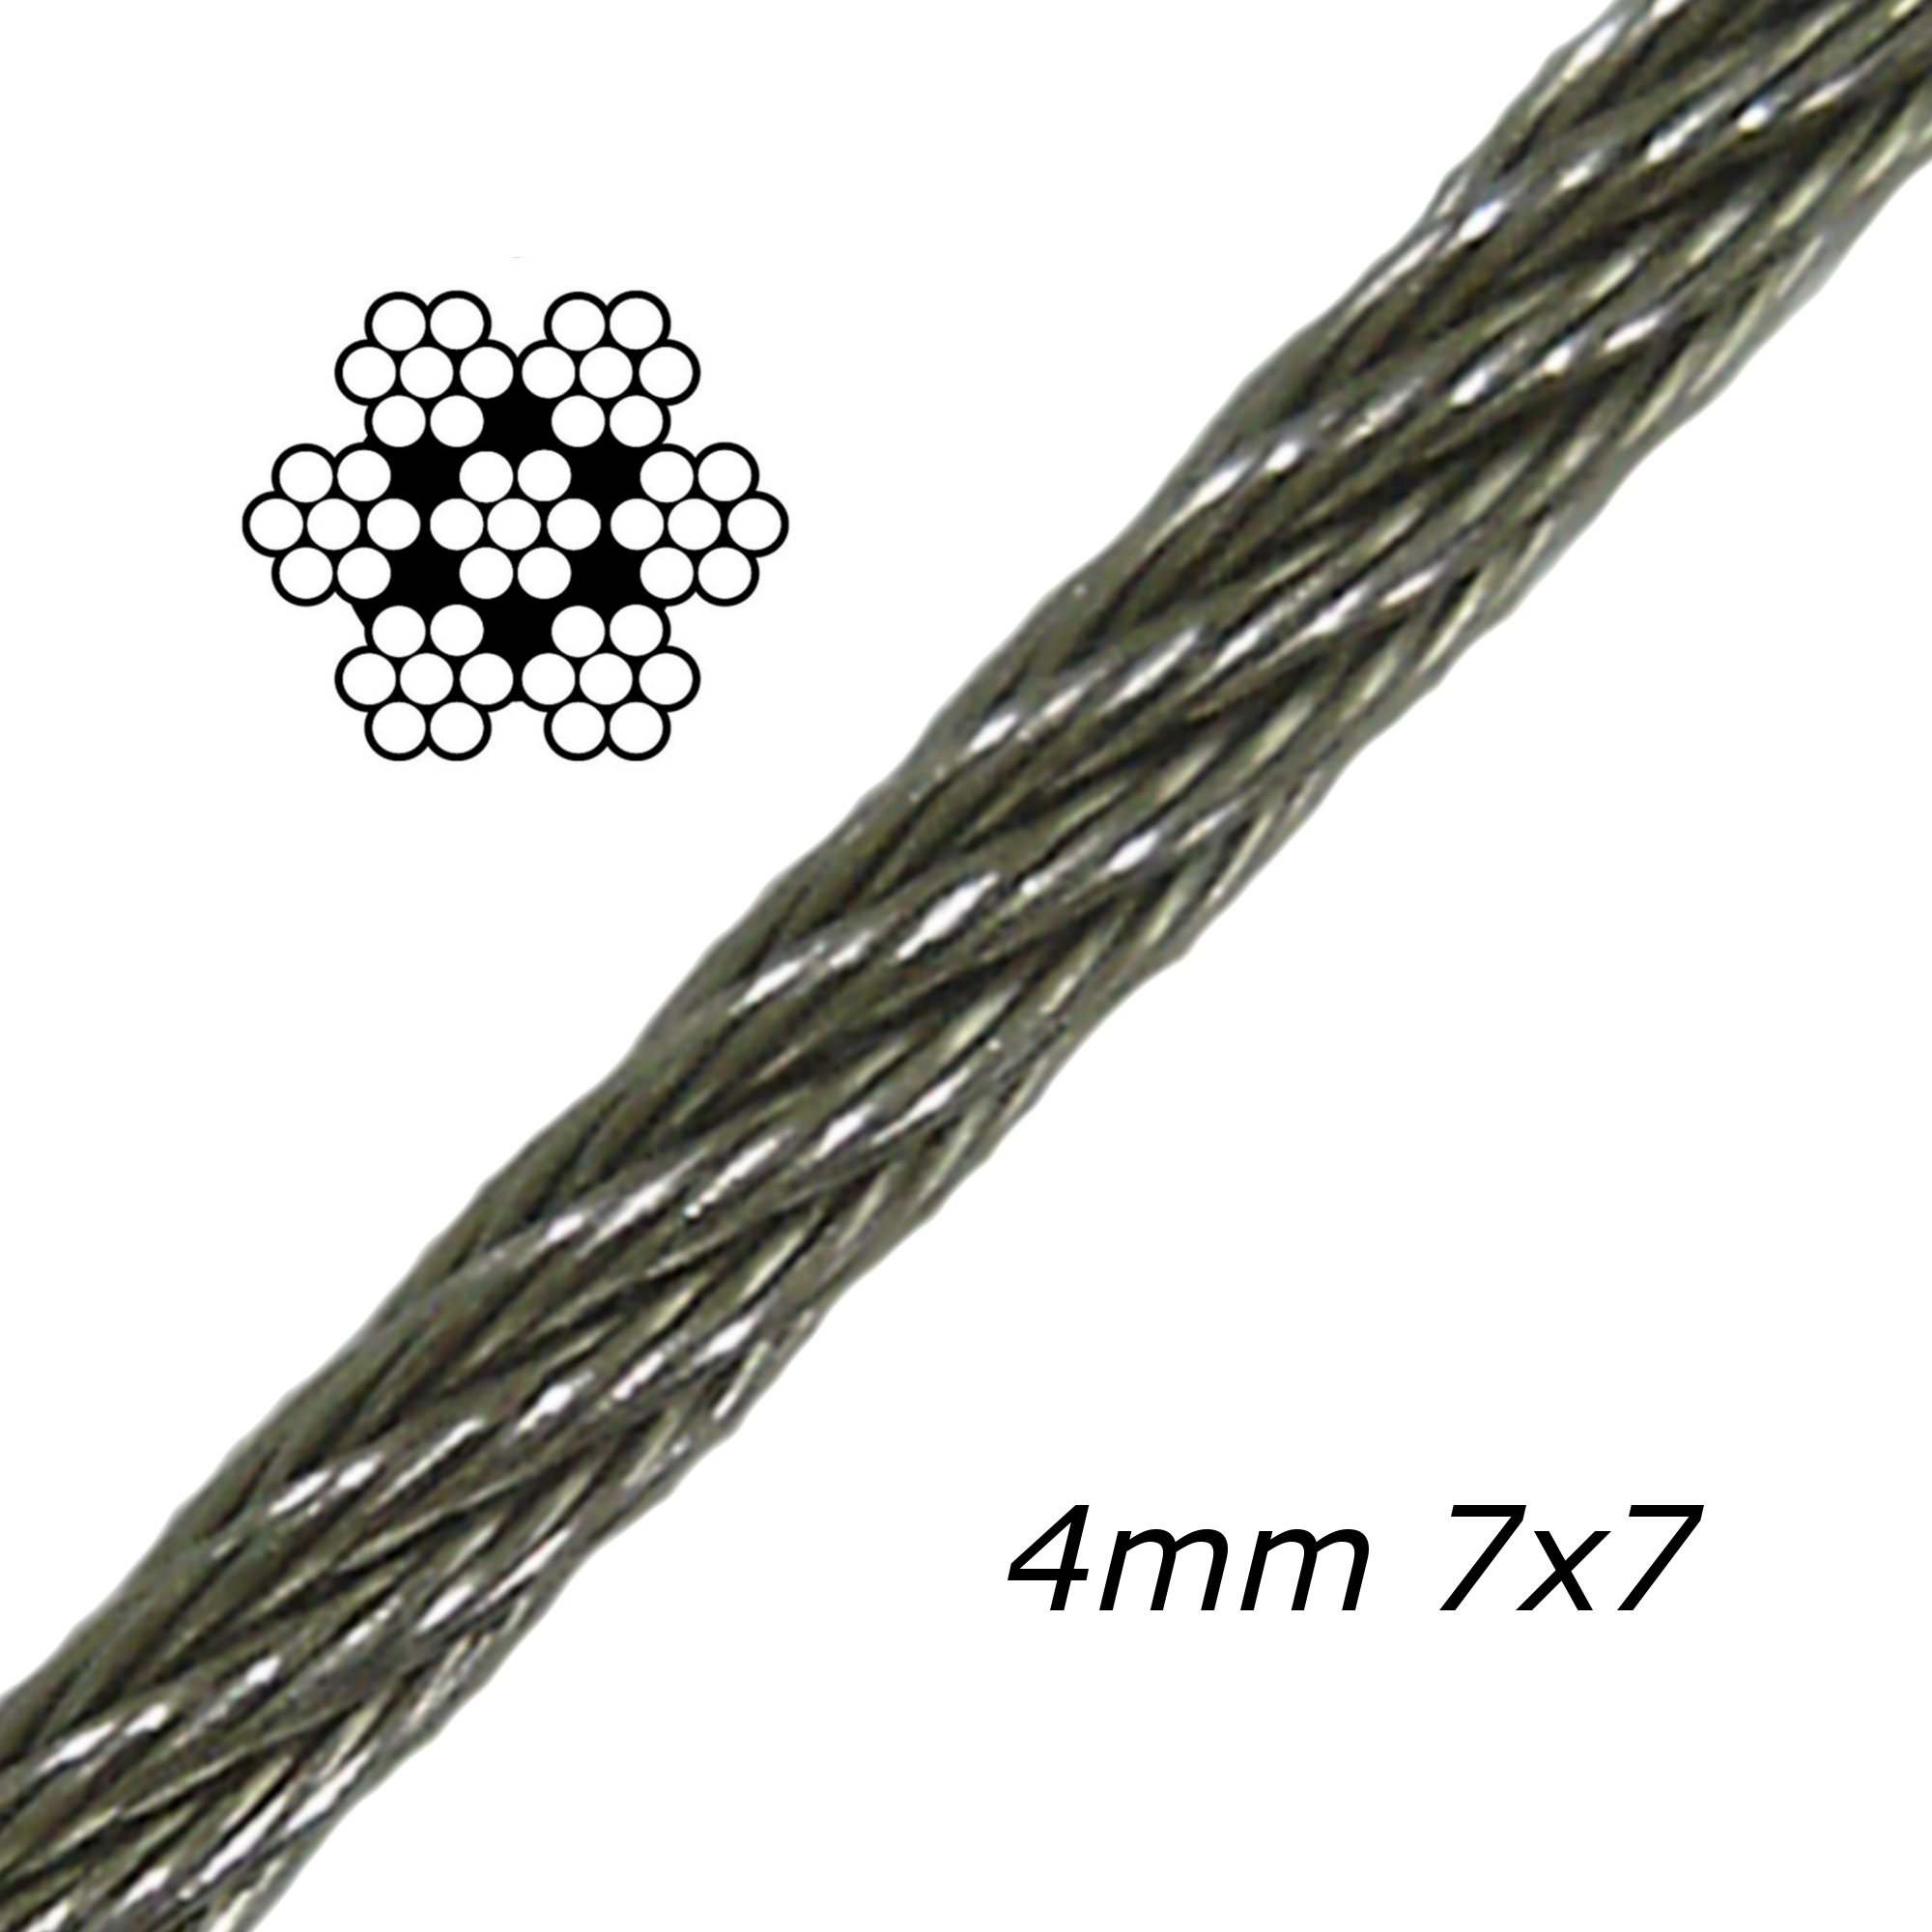 4mm Galvanised Steel Cable 7x7